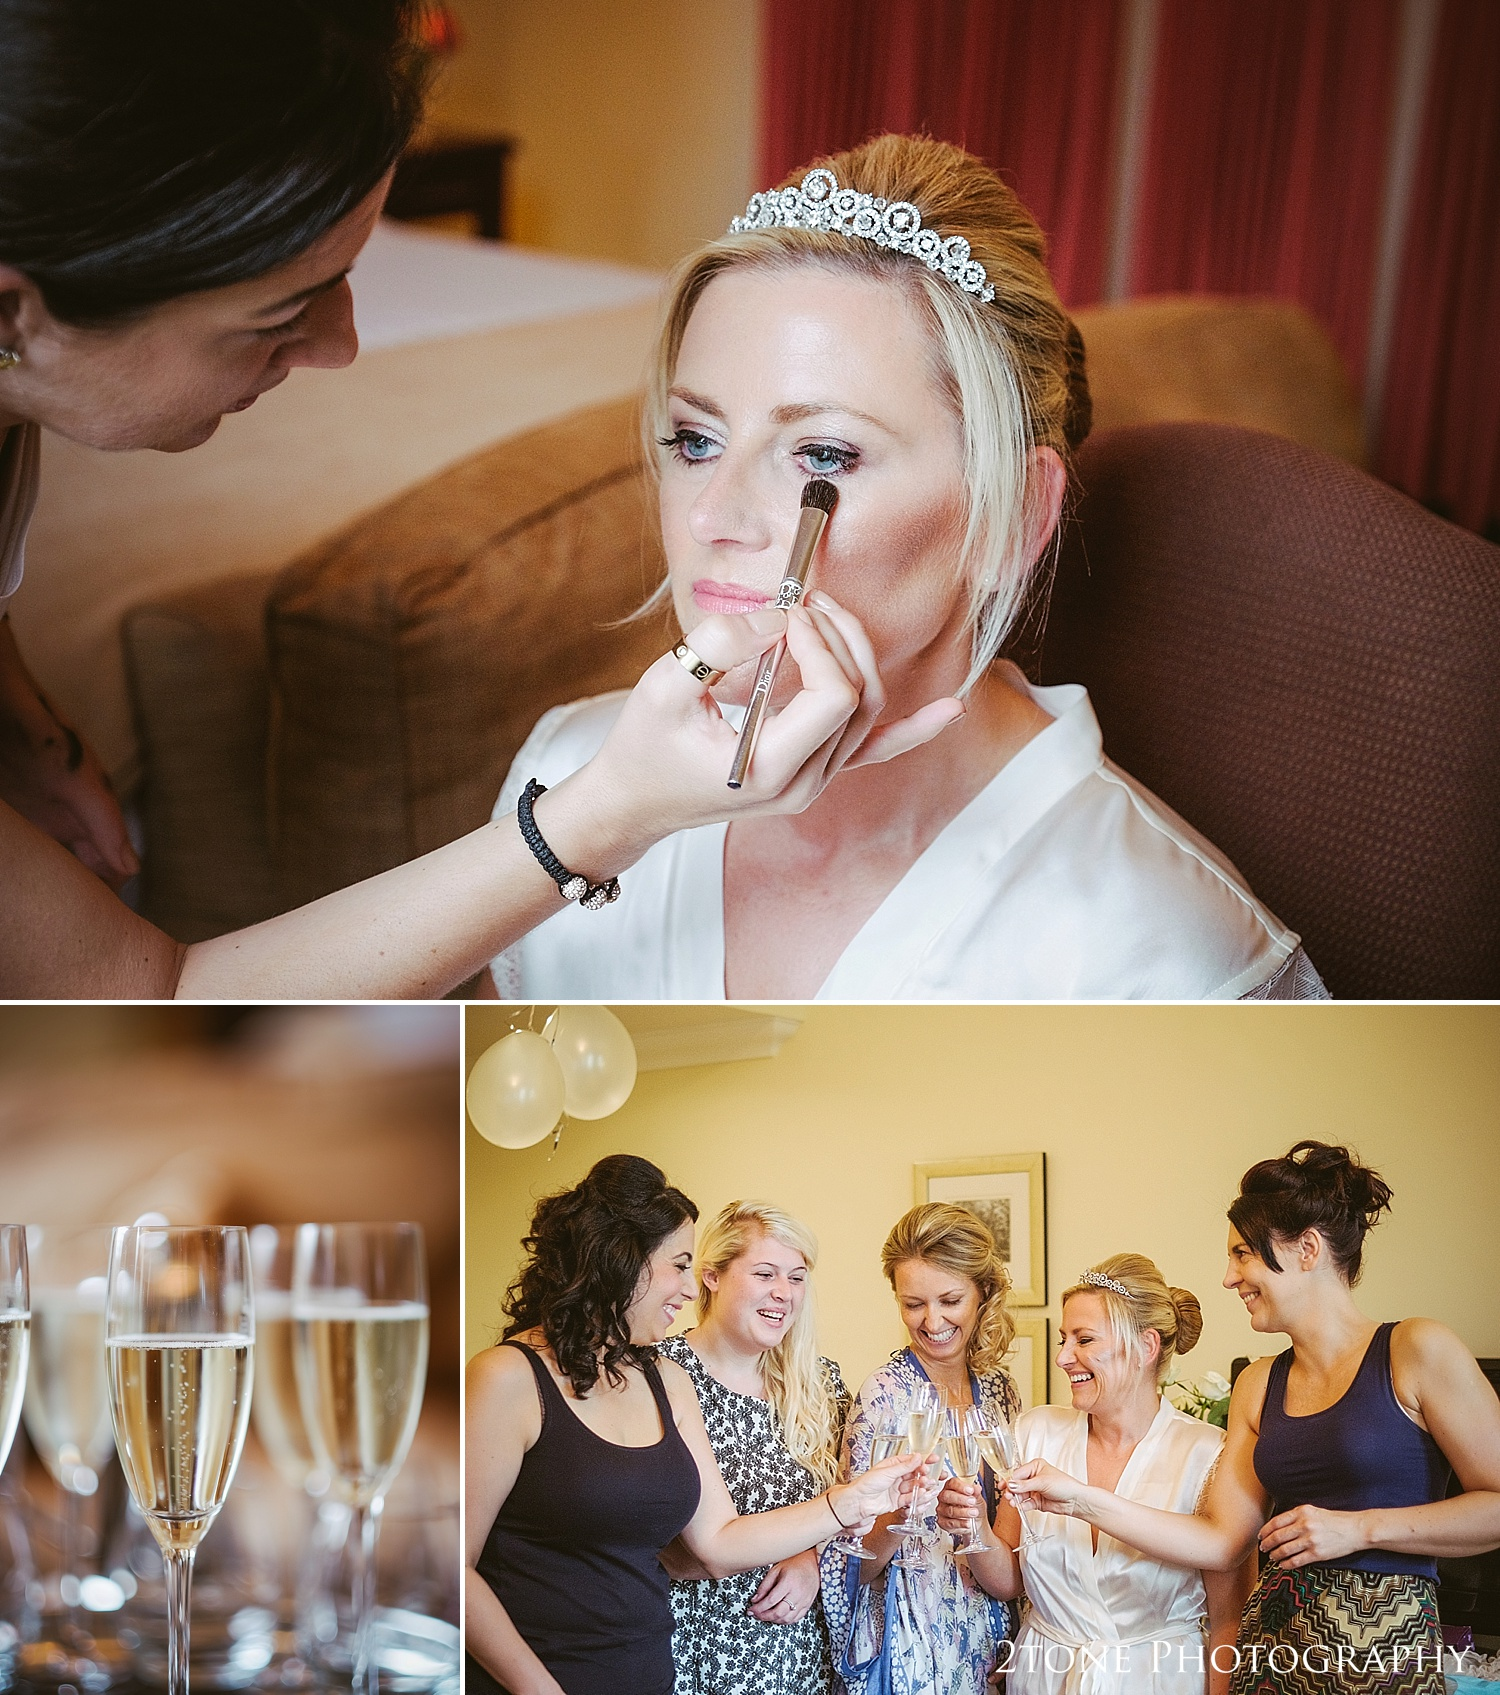 Wedding make up at Linden Hall by Newcastle and Durham based wedding photographers www.2tonephotography.co.uk